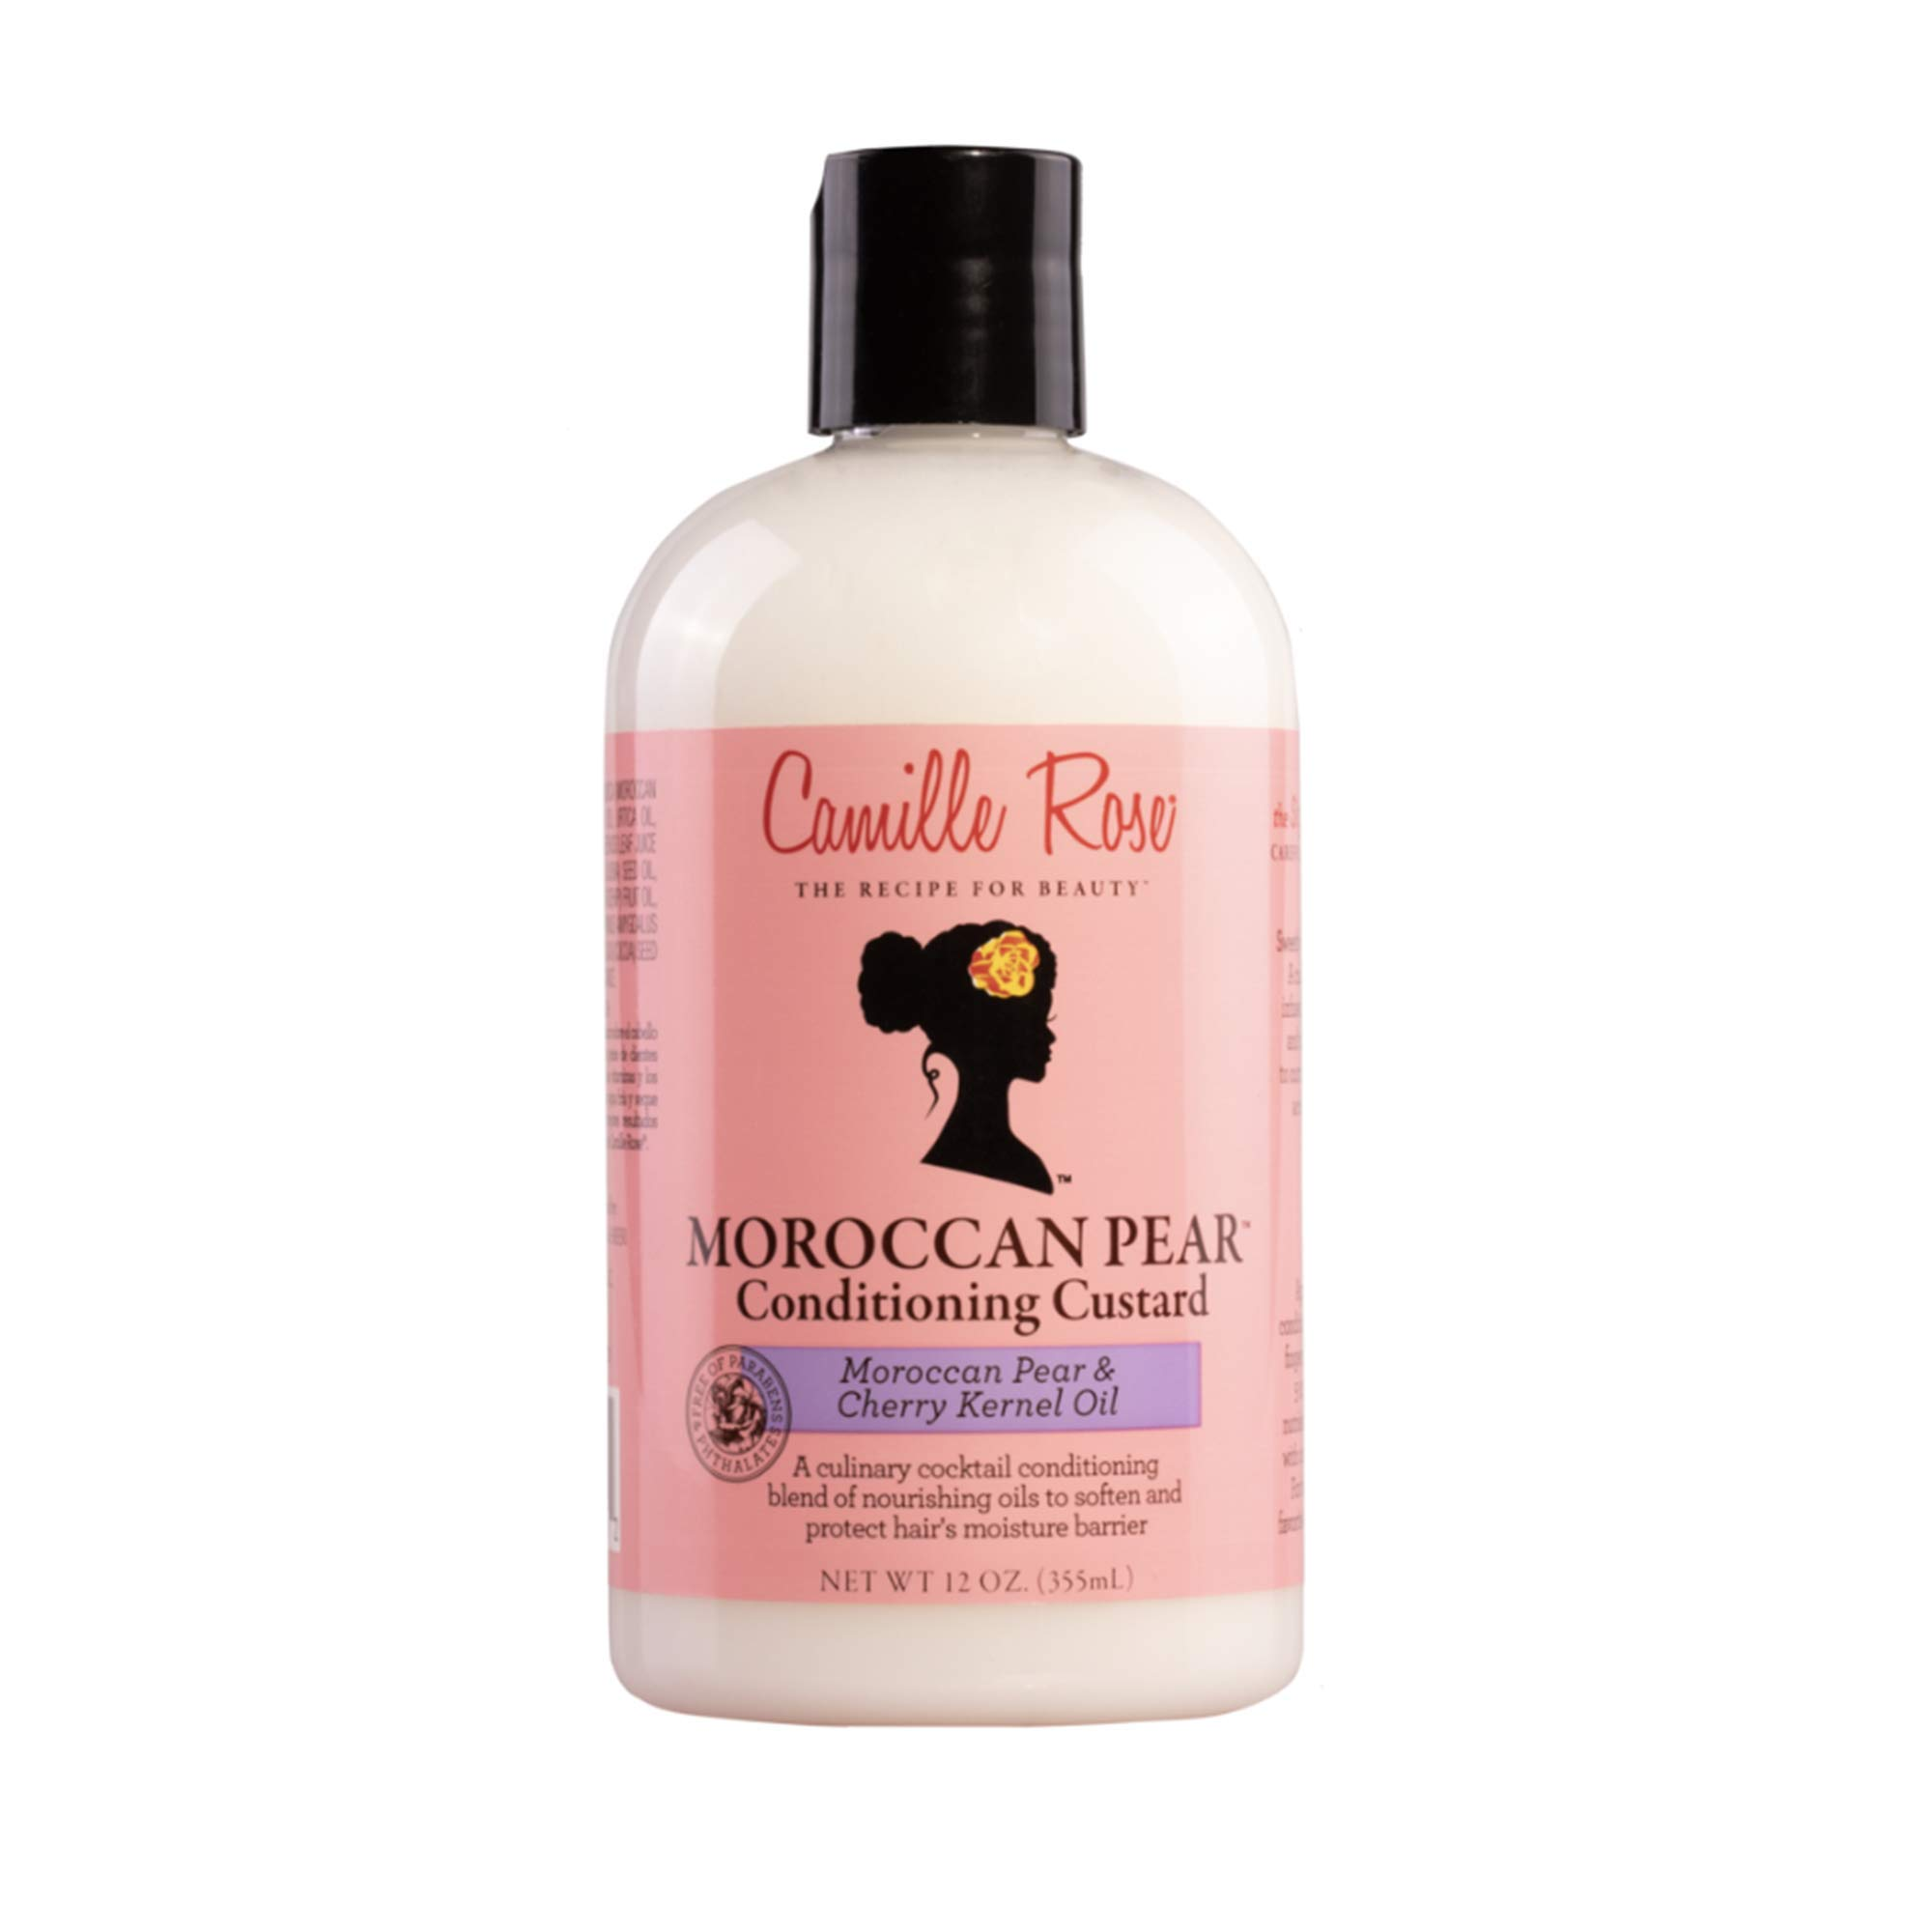 Camille Rose Moroccan Pear Conditioning Custard, 12 fl oz